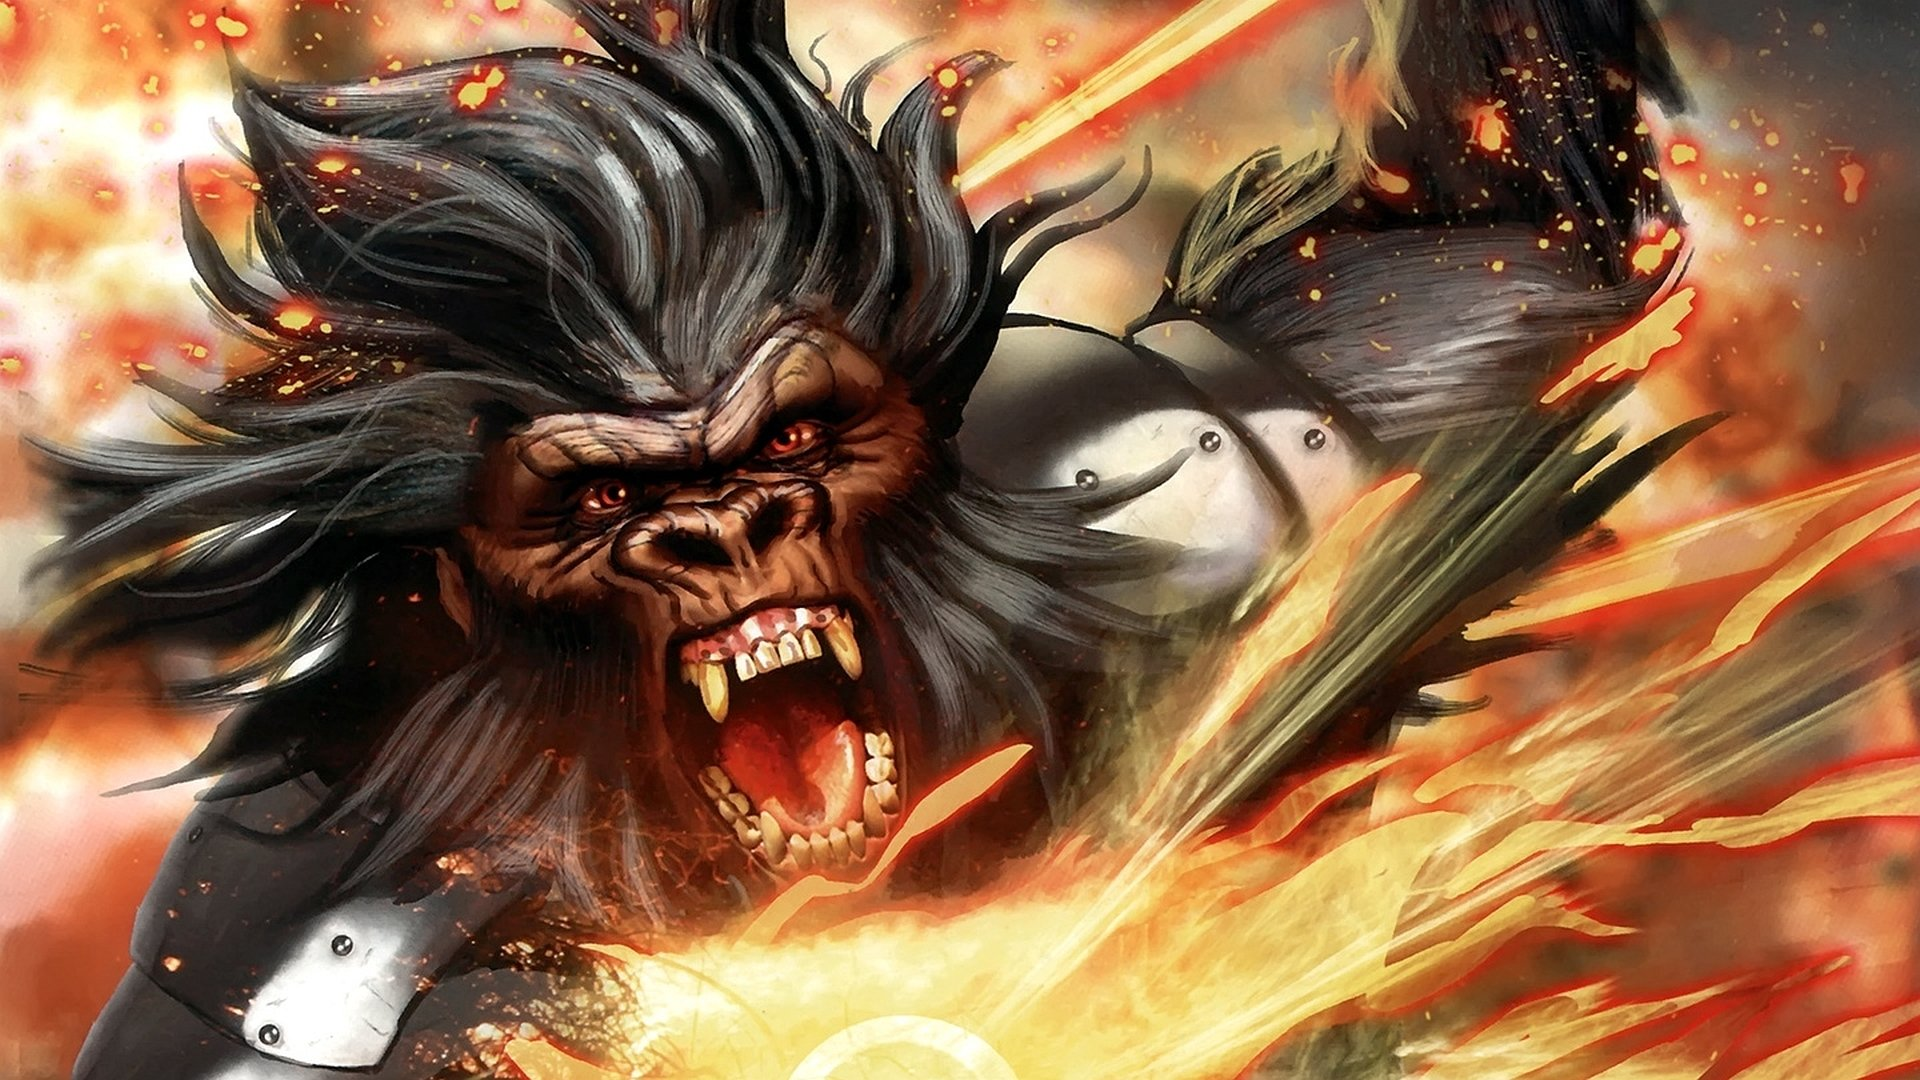 Planet Of The Apes Wallpaper: Planet Of The Apes HD Wallpaper